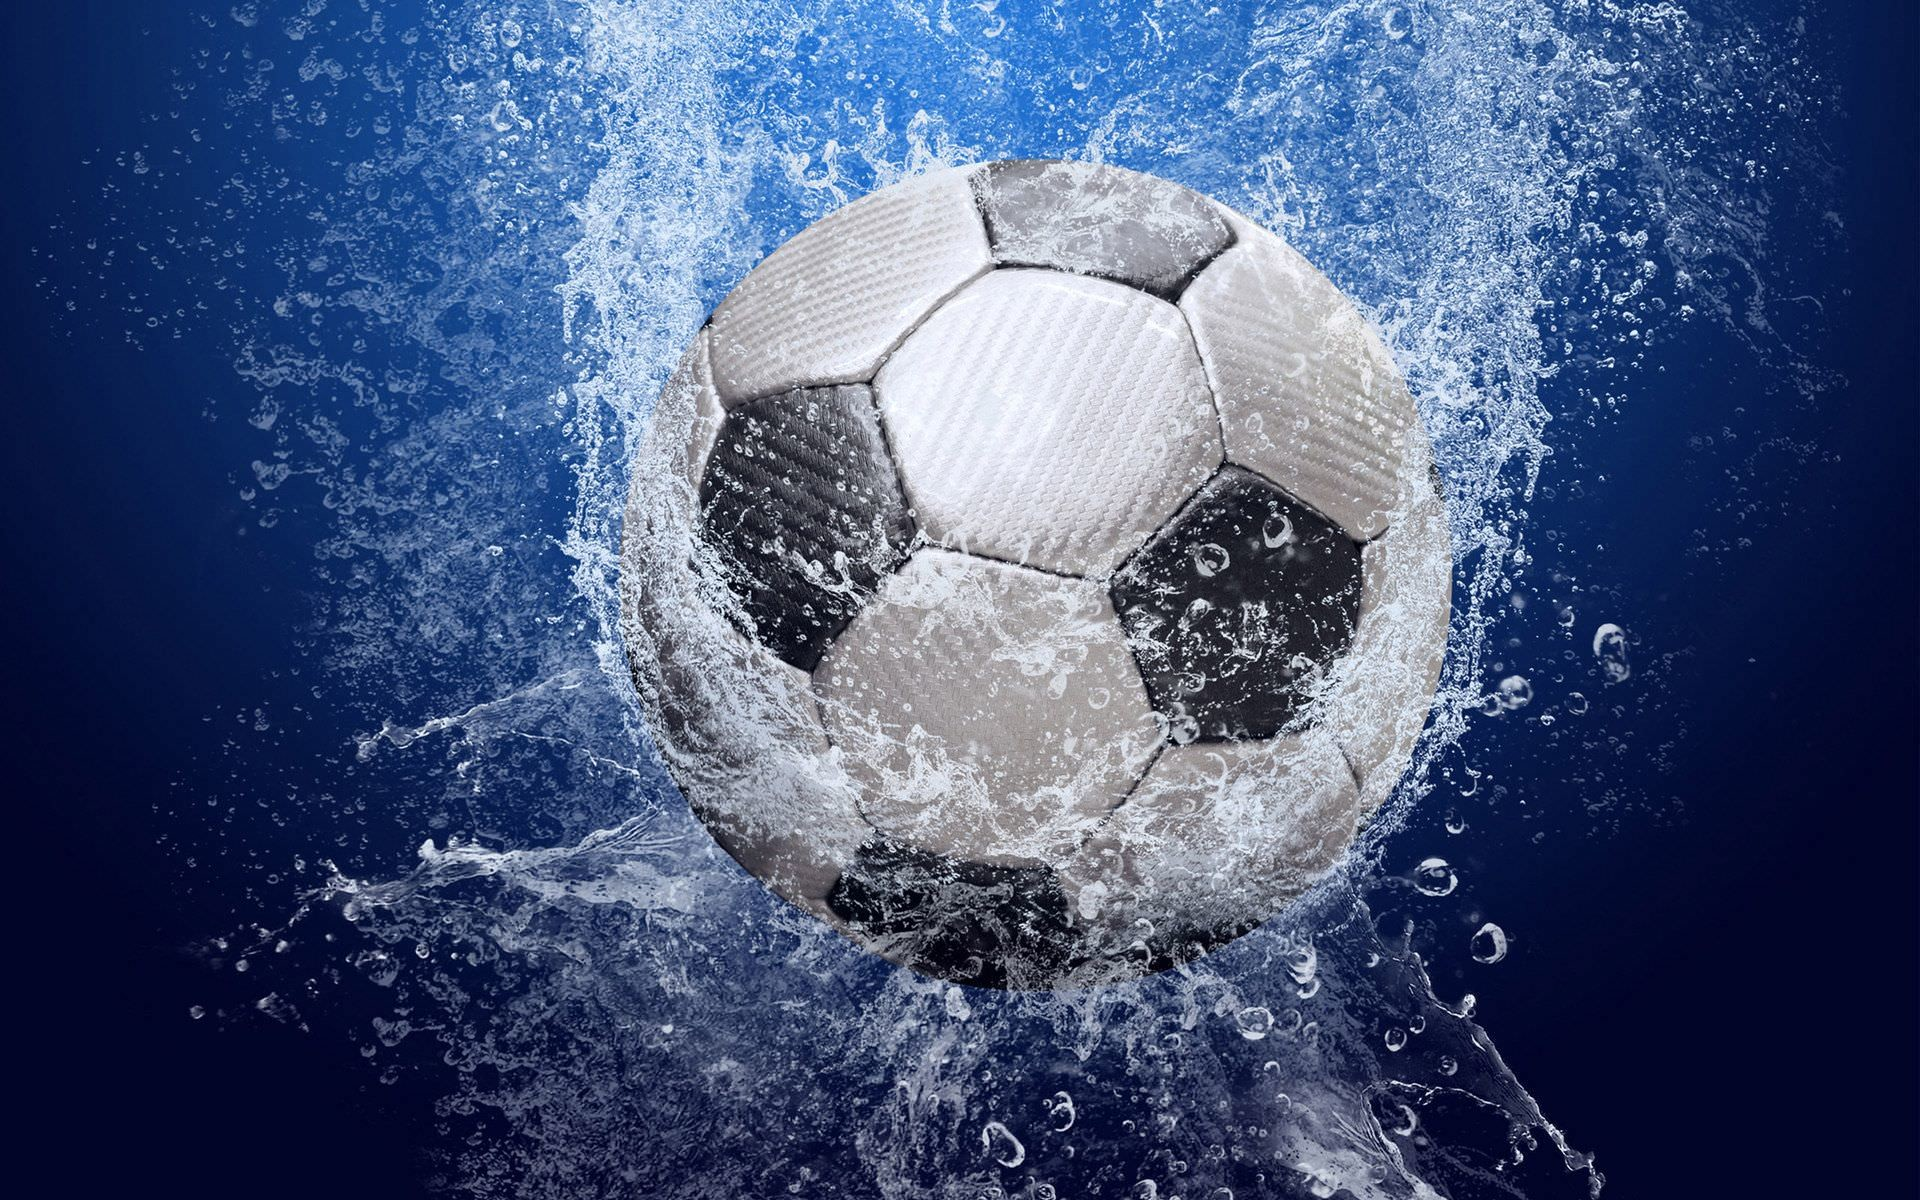 1920x1200 Soccer Background For Free Downlaod  Download-button-17111111111113182111111111111111211121111111211111111111